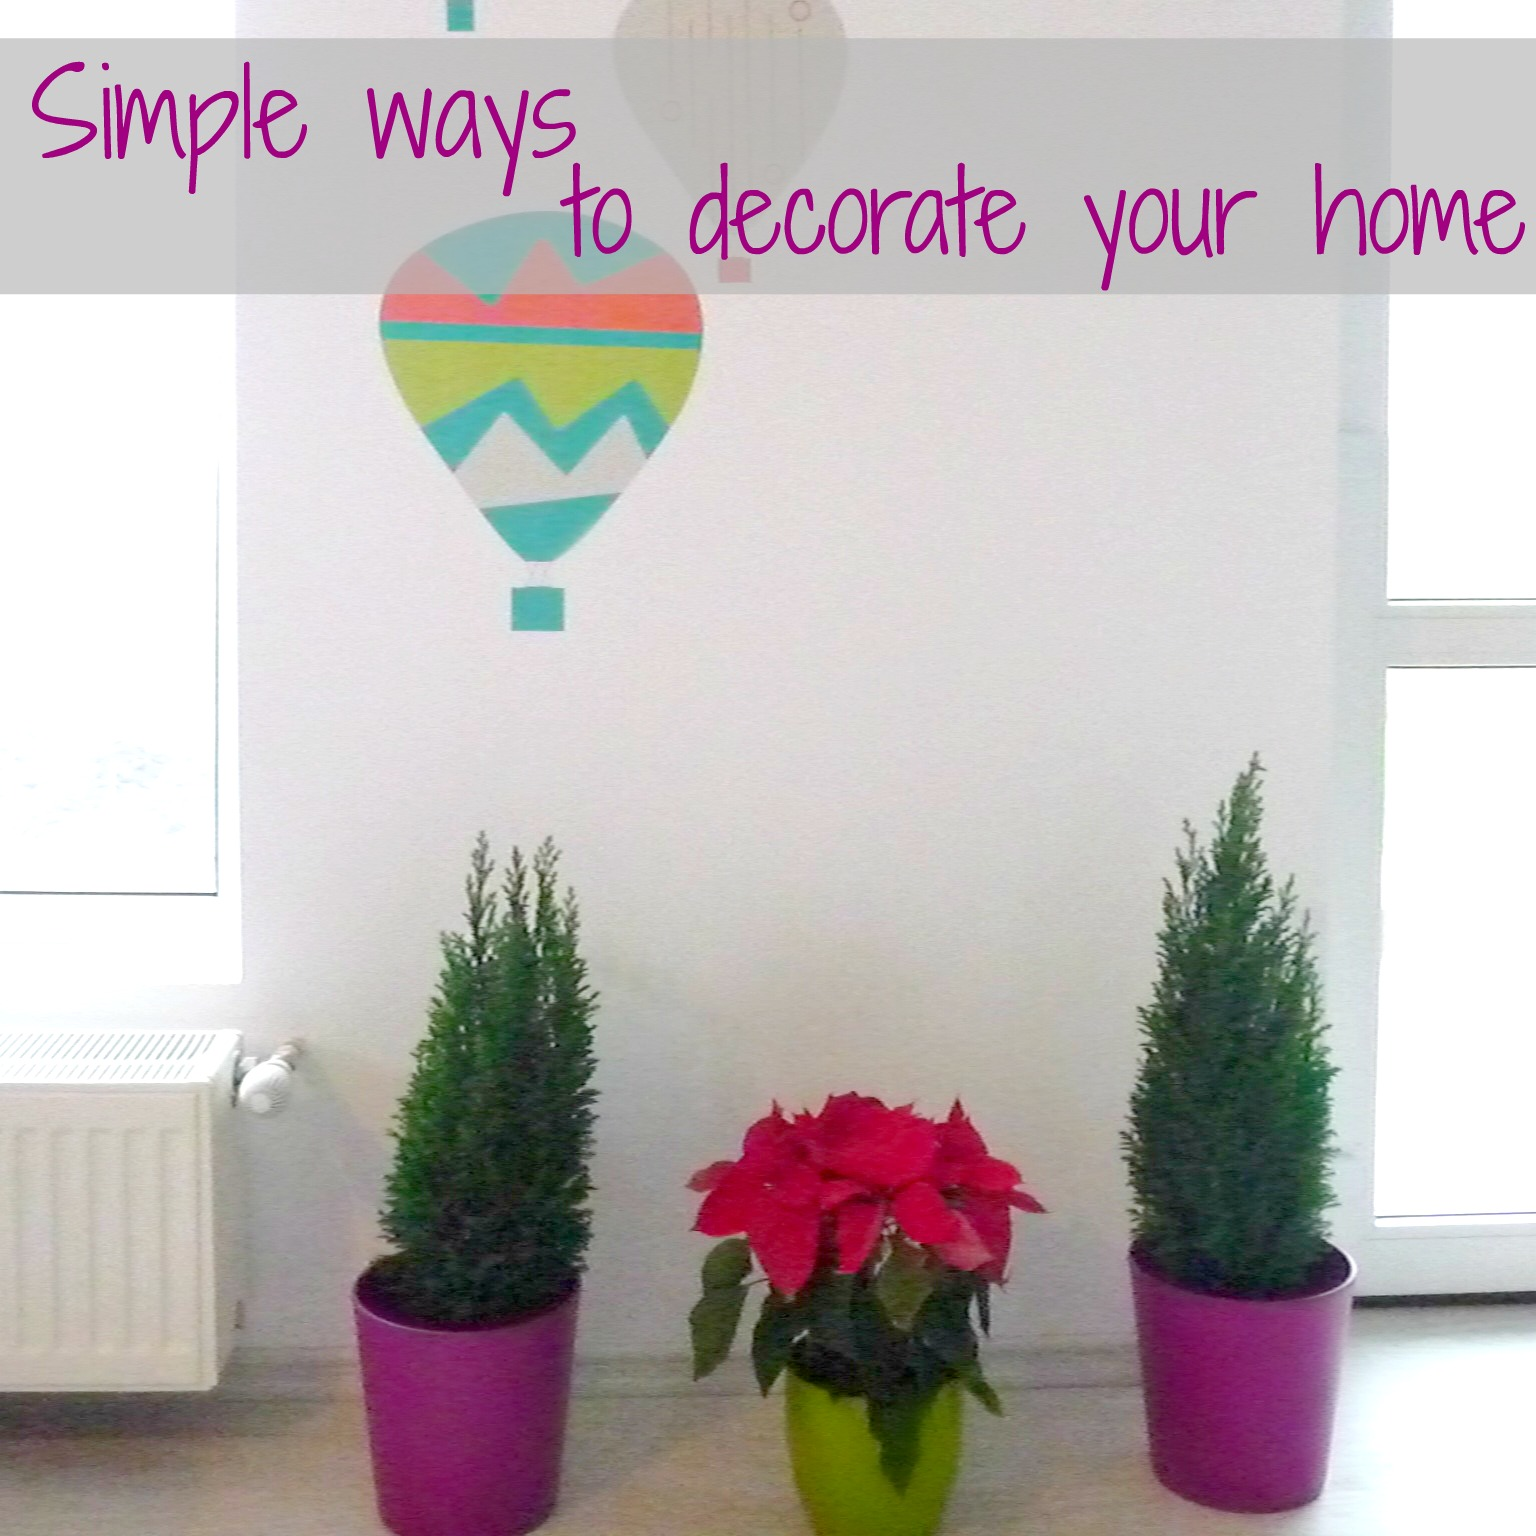 Simple ways to decorate your home 28 images 23 Cheap easy ways to decorate your home